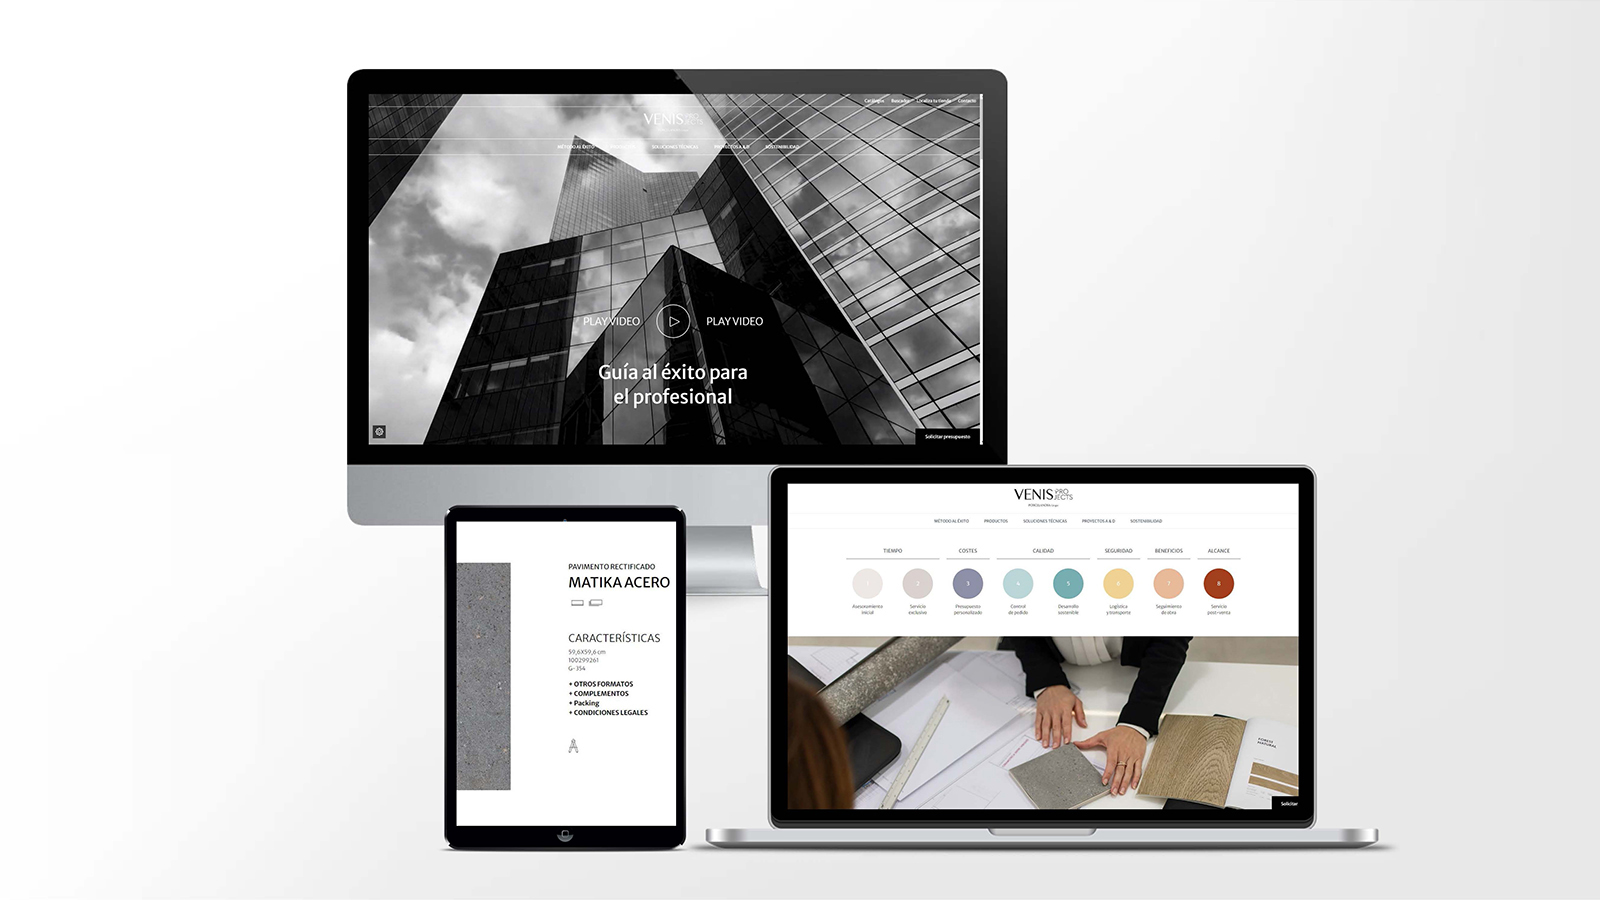 Venis Projects brings ceramic tiles closer to professionals with new digital tools